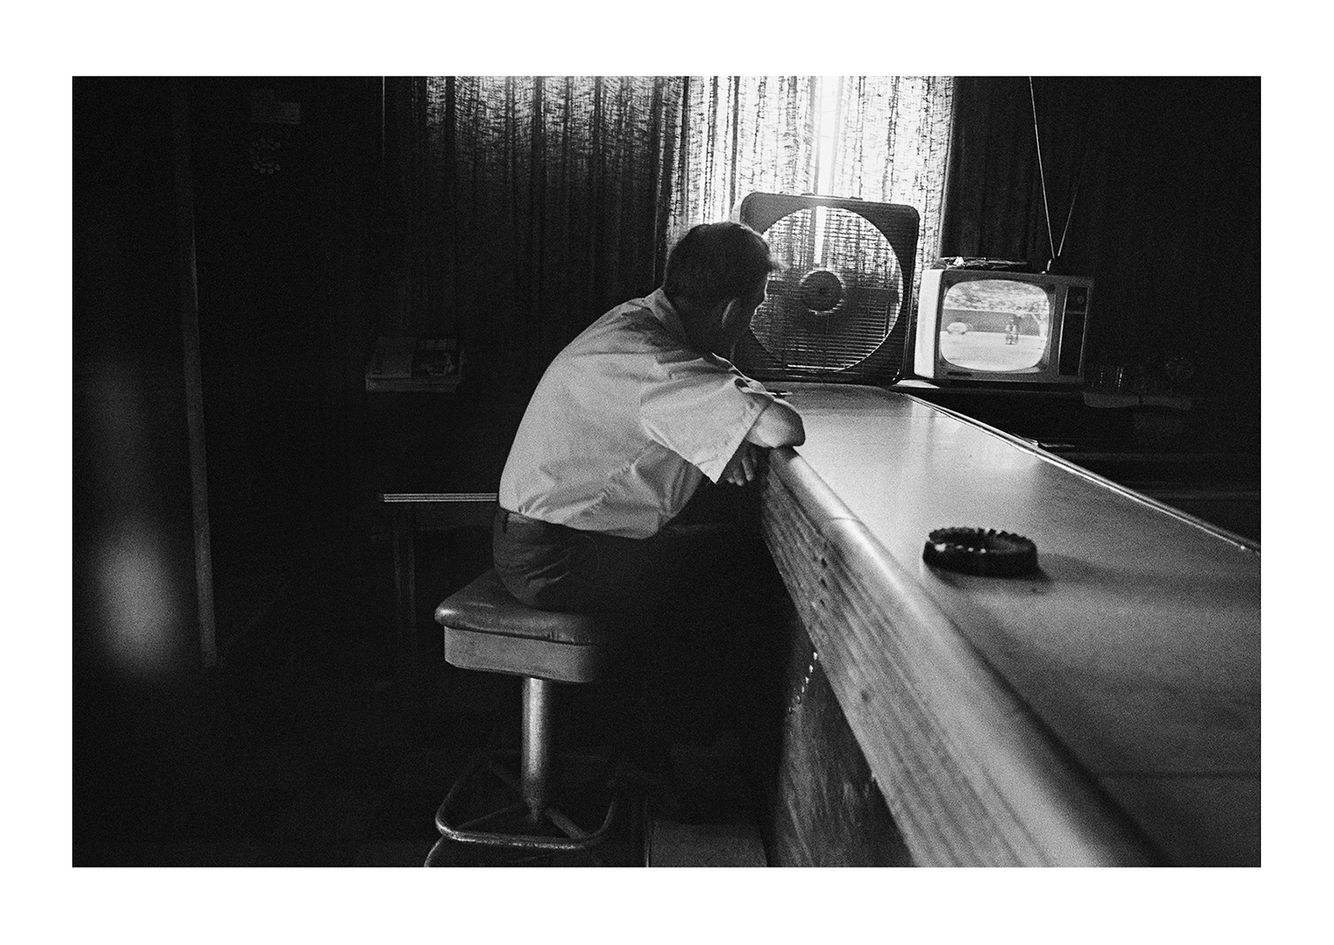 Man Sitting at the Bar Watching a Tiger's Game, Detroit 1972